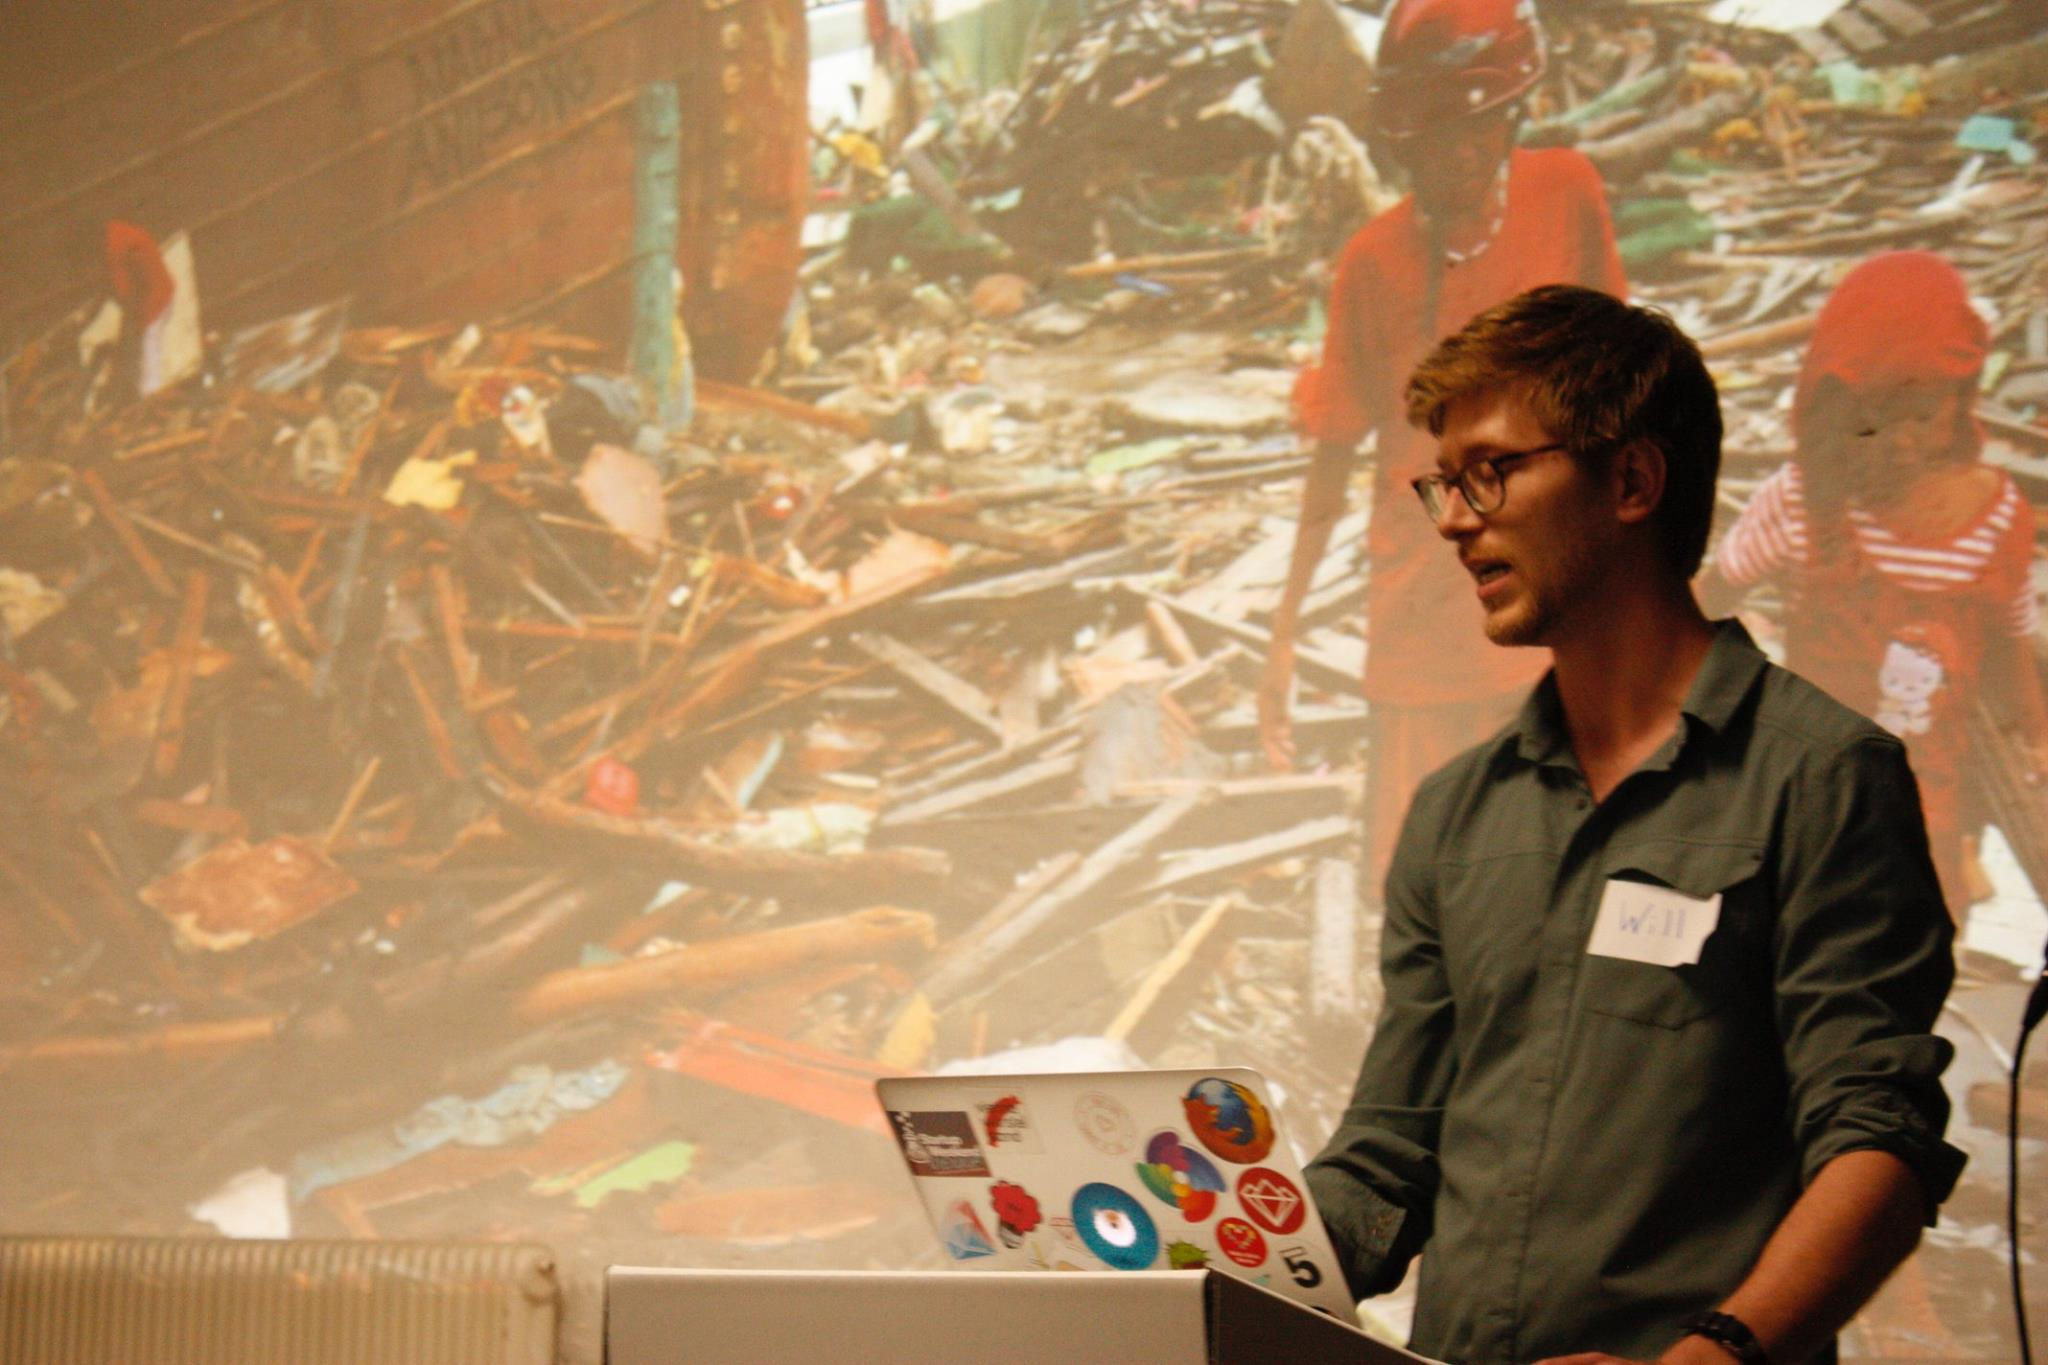 William Heegaard - Will Heegaard sees every disaster as an opportunity to build back greener. A registered paramedic, Will responded with International Medical Corps to Typhoon Haiyan, then deployed solar refrigeration in West Africa during the Ebola outbreak. Domestically, Will's been on the ground with Team Rubicon after disasters in Louisiana, Minnesota, and Puerto Rico. Fascinated by the connection between public health, environmental science and humanitarian crisis, he leads projects that sit at the nexus of emergency response and sustainable development. He currently serves on the Board of the Minnesota Volunteer Organizations Active in Disasters (MNVOAD), and as a Minnesota State Leader for Team Rubicon. Will received his B.A. in Peace and Conflict Studies from University of California Berkeley. When he's not on an ambulance or in the field, he likes to cook, write, travel and tinker on his off-grid tiny house.